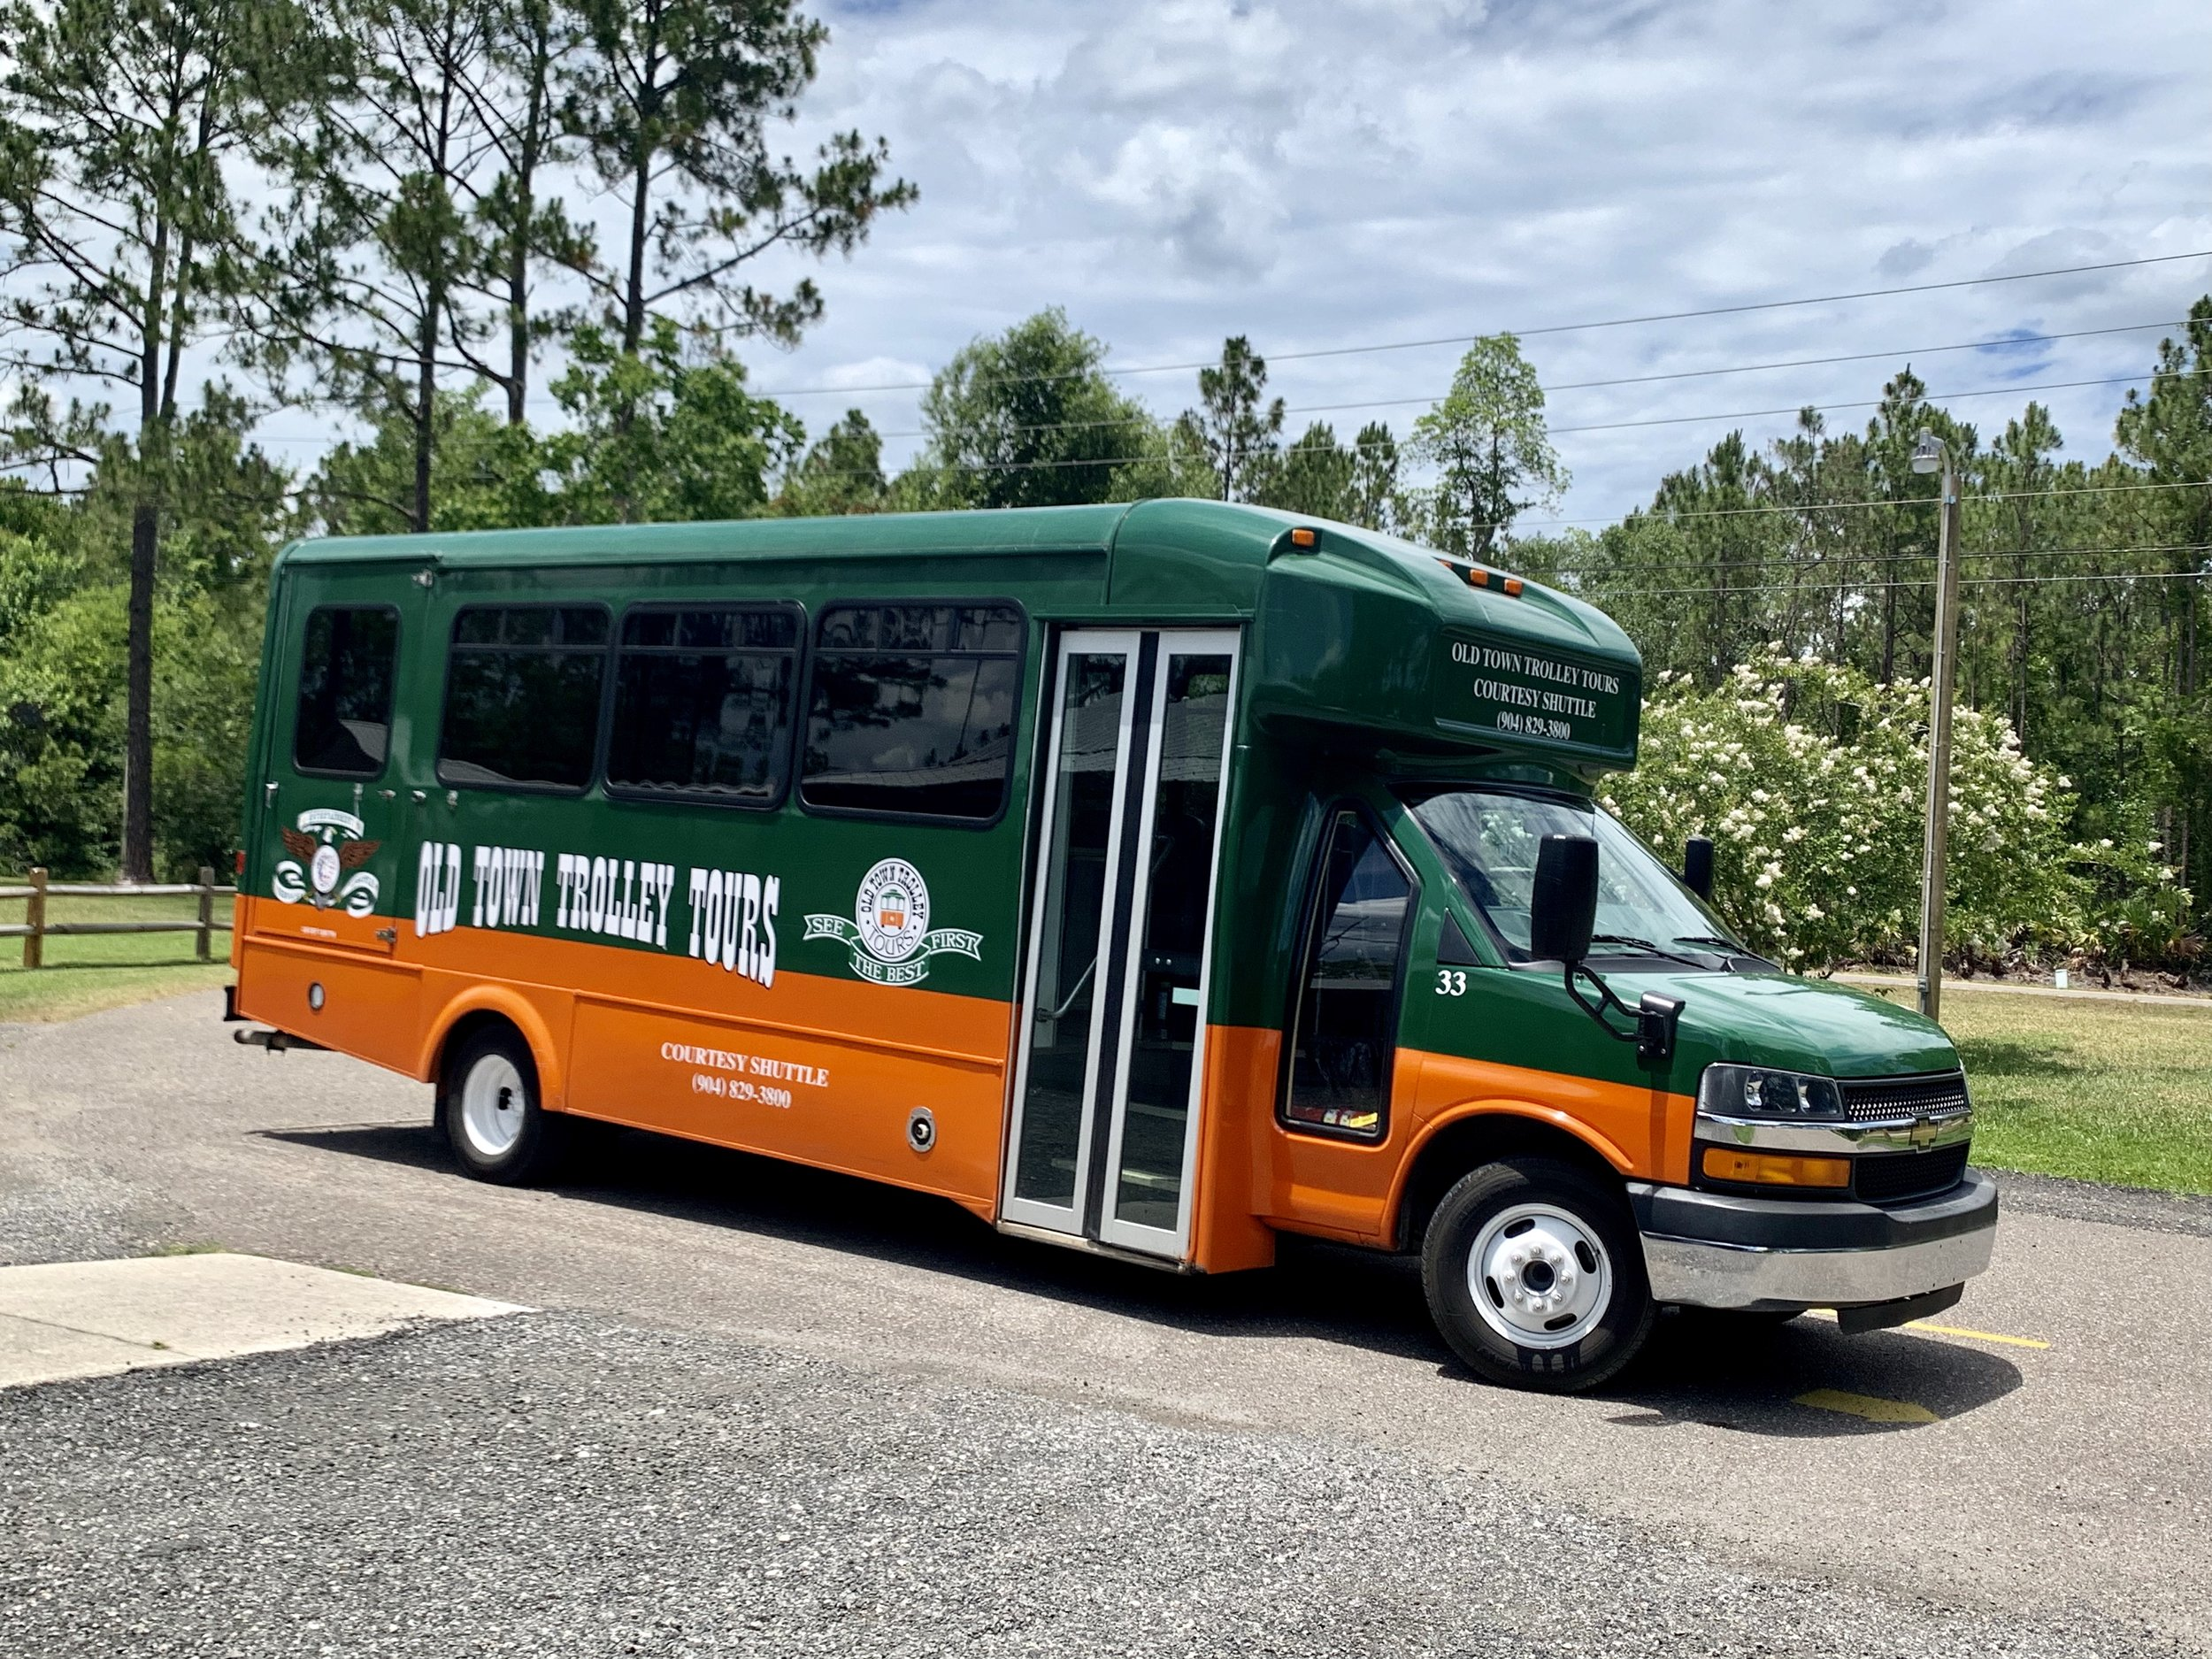 Trolley pick available from Old Town Trolley Tours -